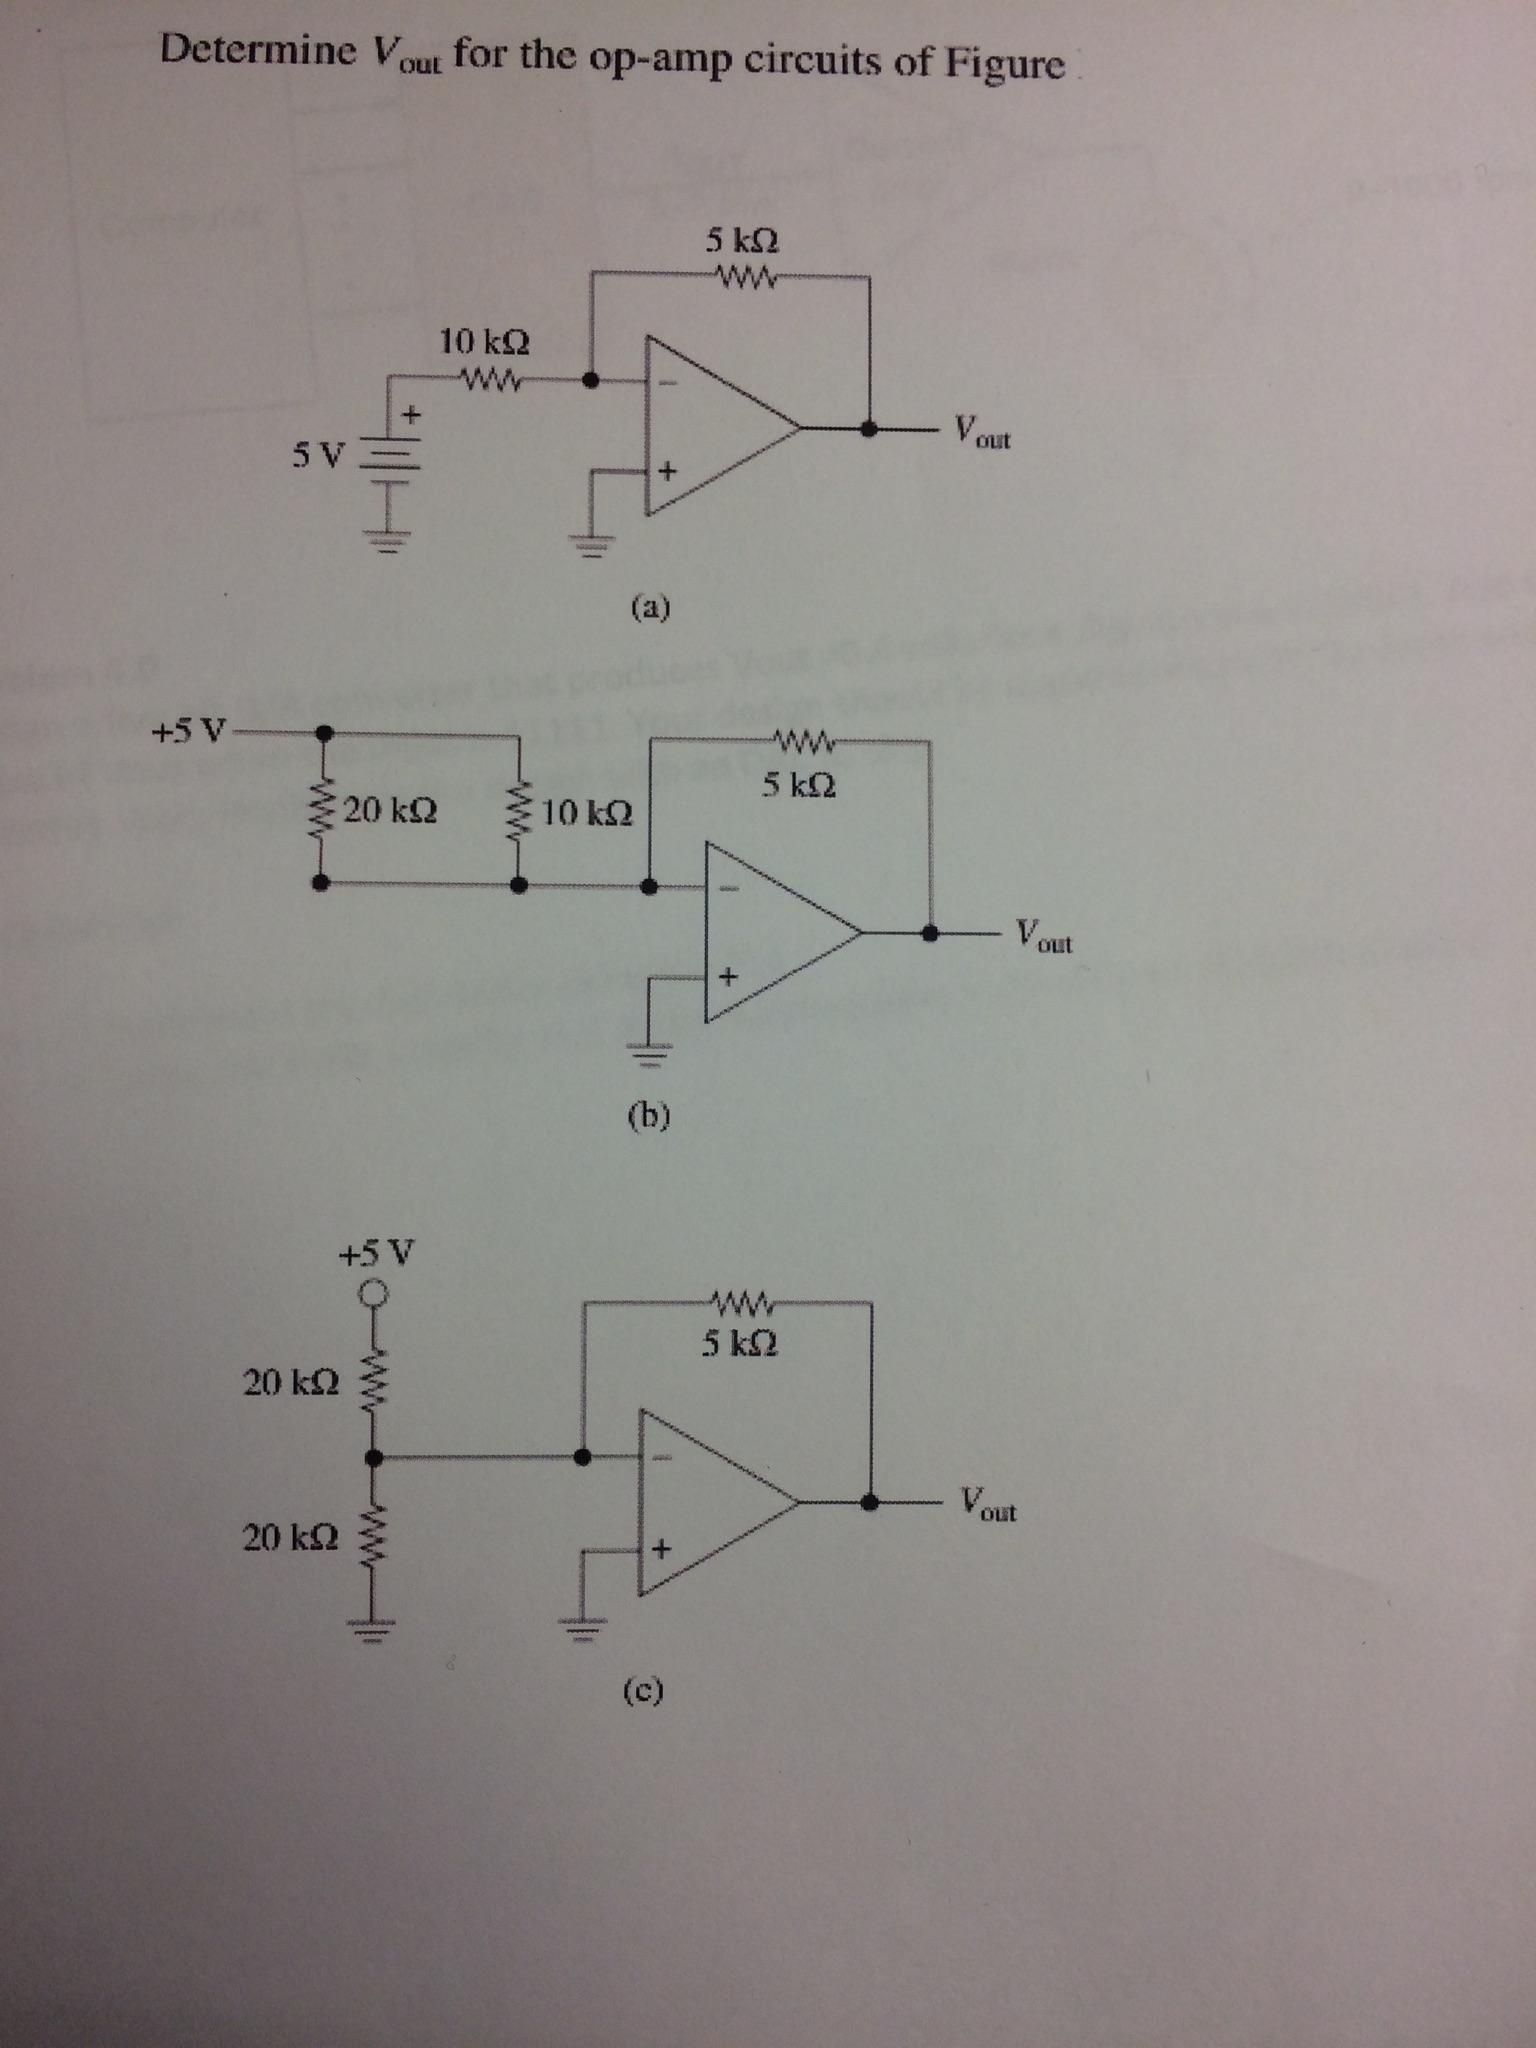 Determine V Out For The Op-amp Circuits Of Figure. | Chegg.com